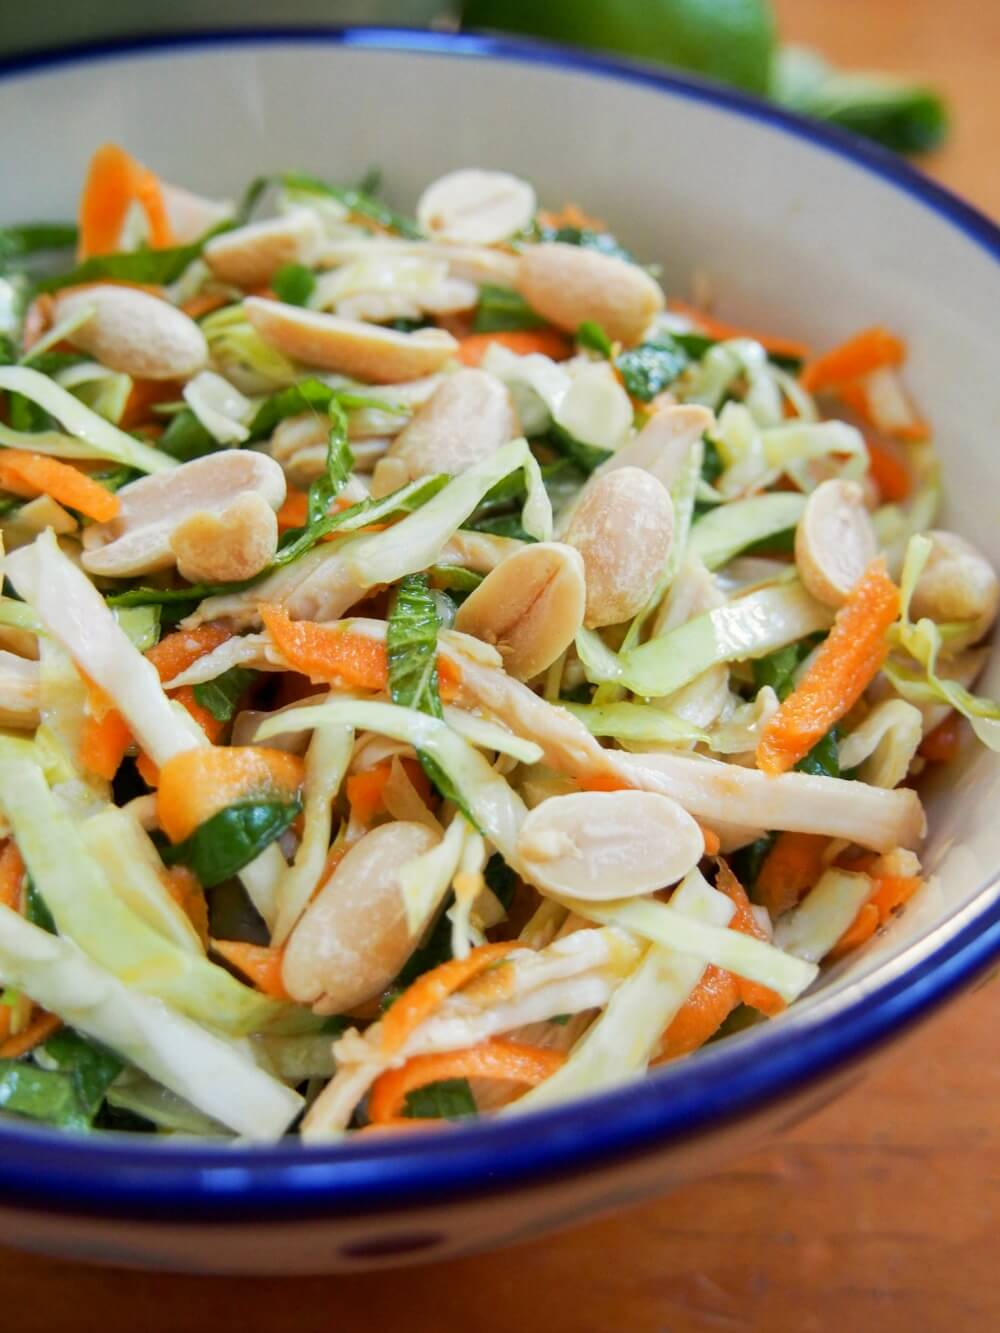 Vietnamese chicken salad is simple but delicious, a great way to enjoy leftover chicken alongside vegetables, herbs and a tasty dressing. A perfect lunch.